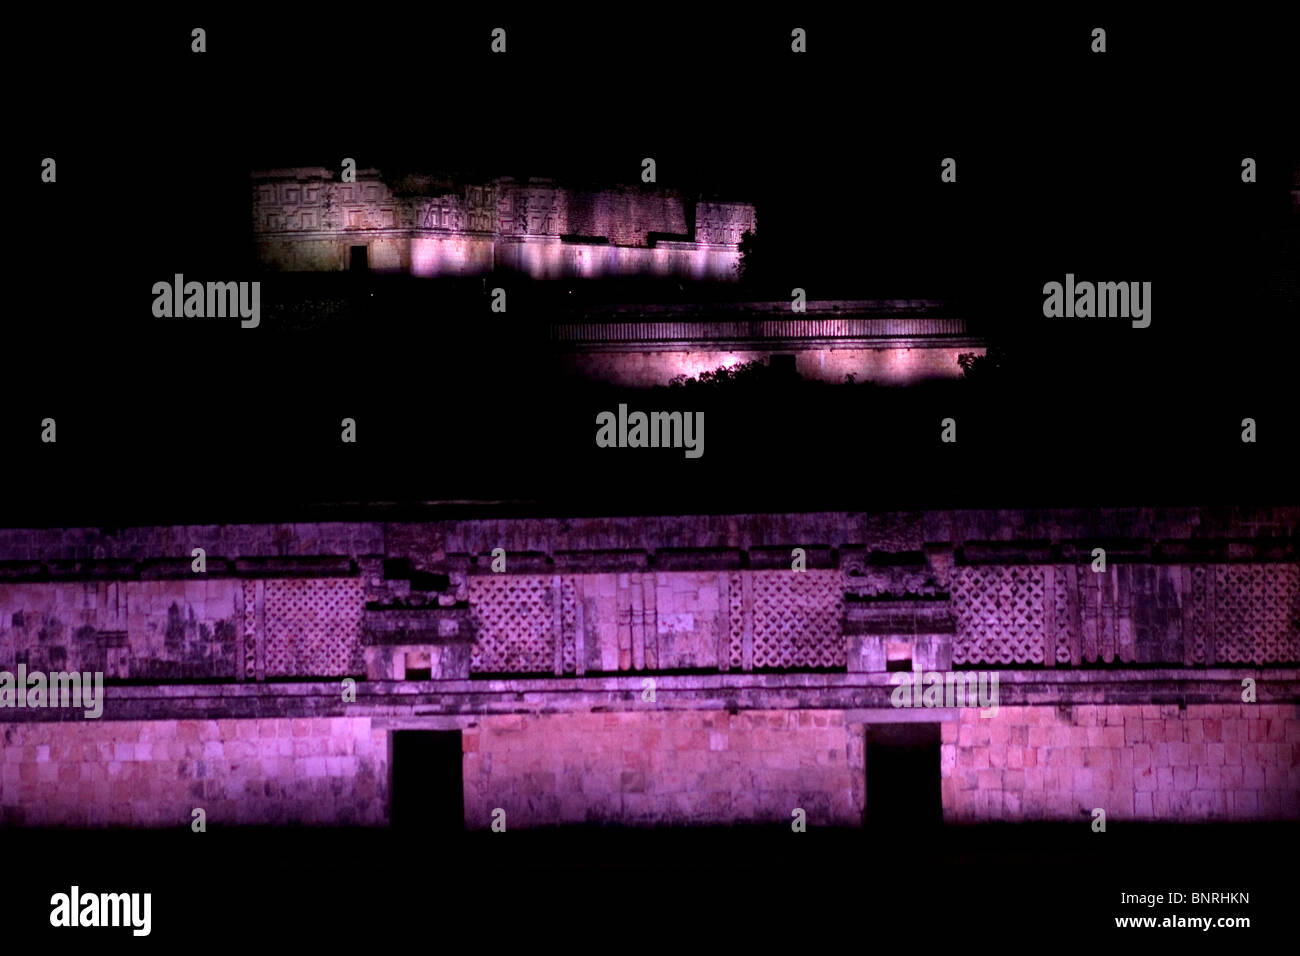 Mayan ruins of Uxmal are illuminated during a theatric laser light show in the Yucatan peninsula, Mexico, July 15, - Stock Image